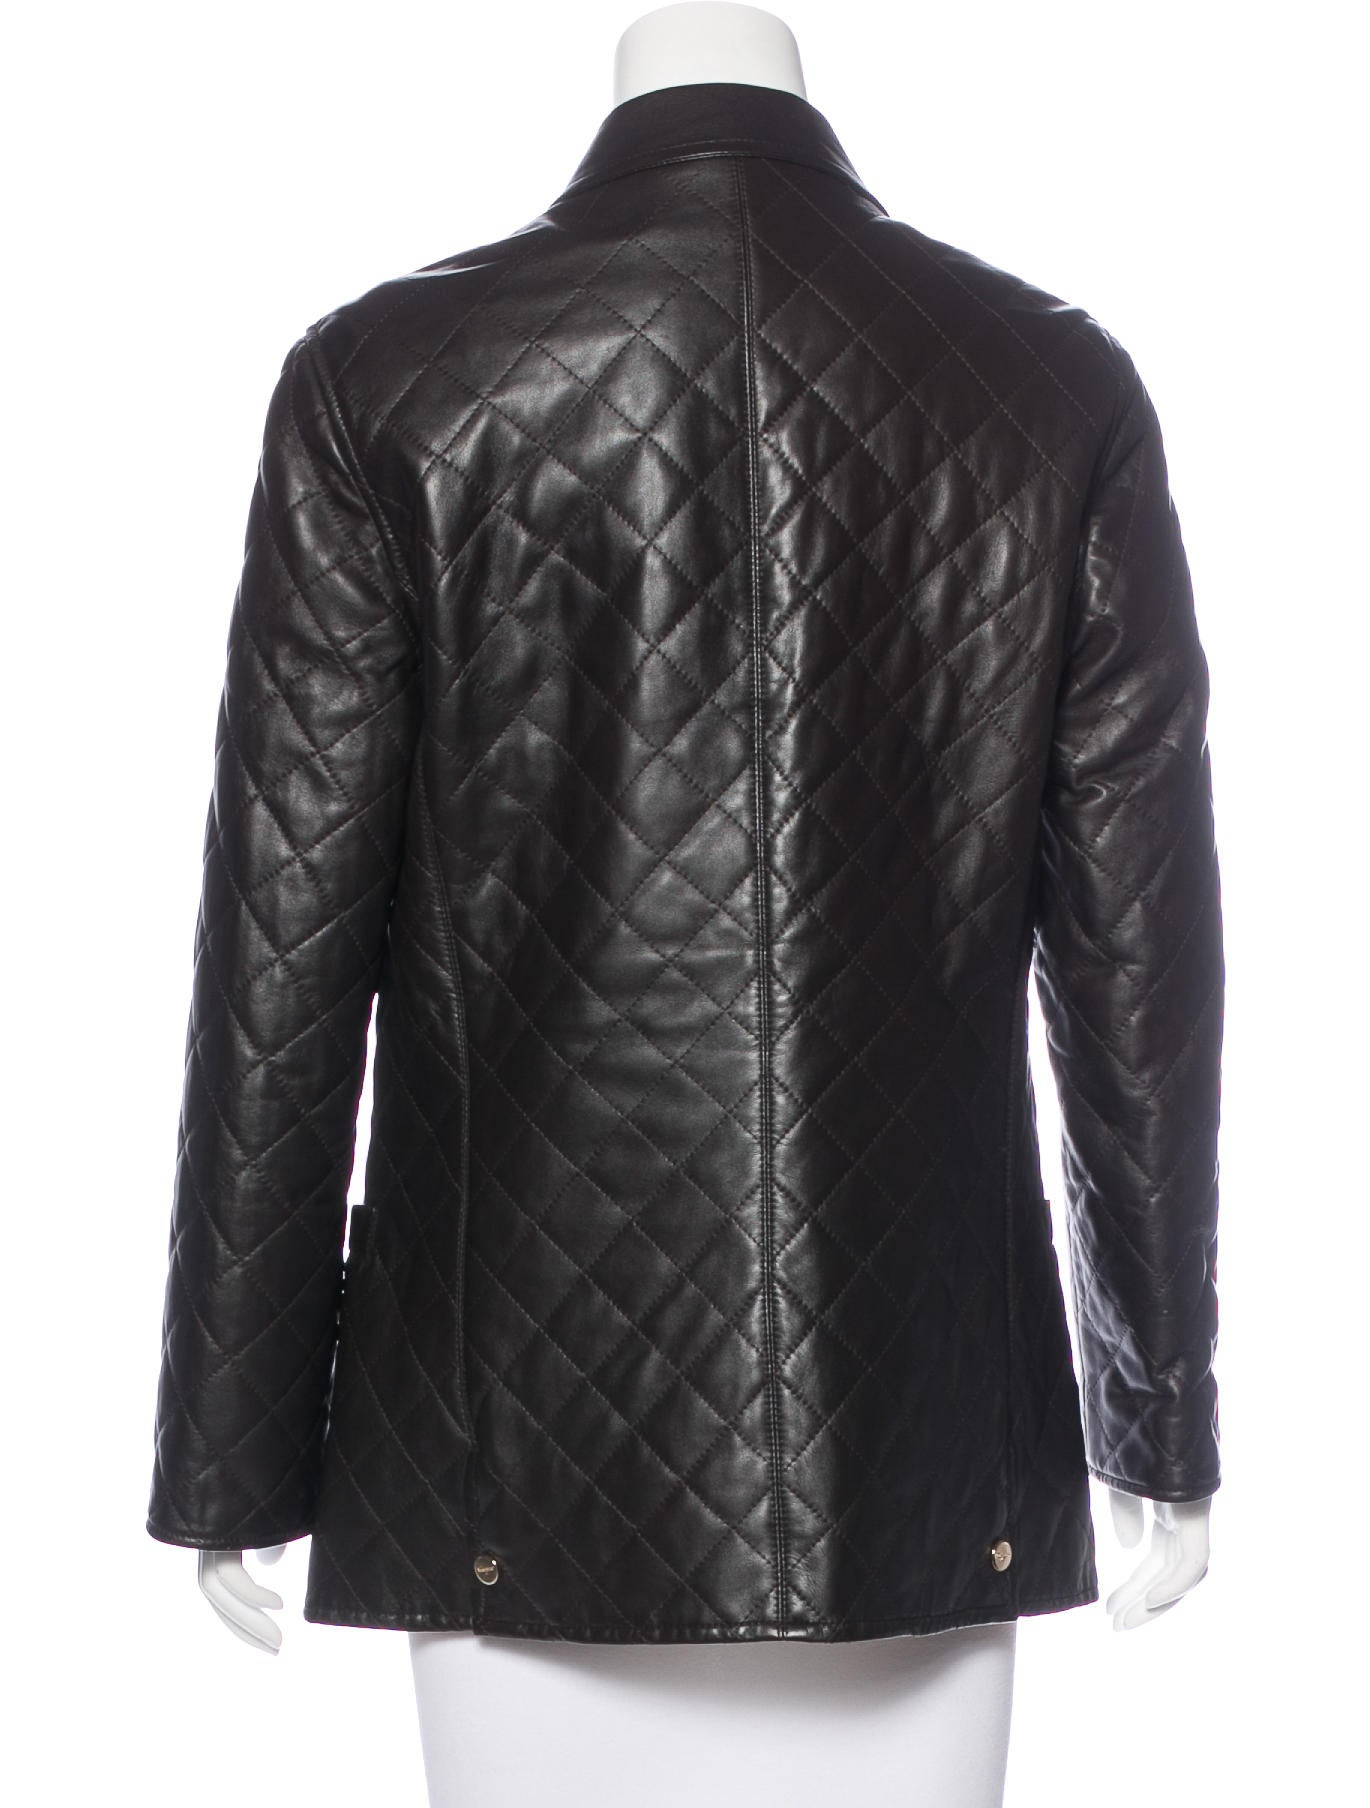 Salvatore Ferragamo Leather Quilted Jacket Clothing